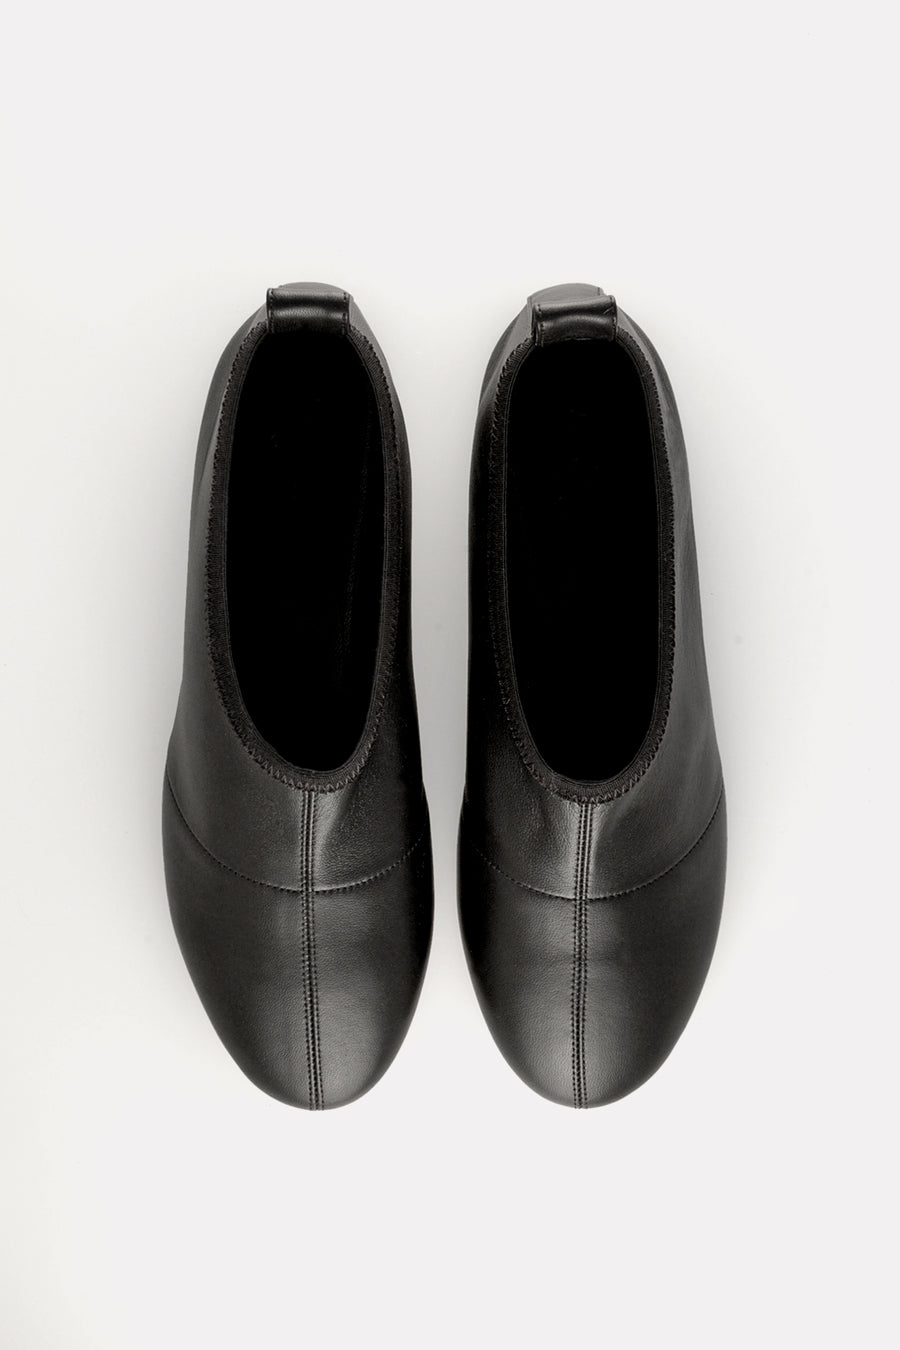 Soft Round Toe Flat Black Nappa.